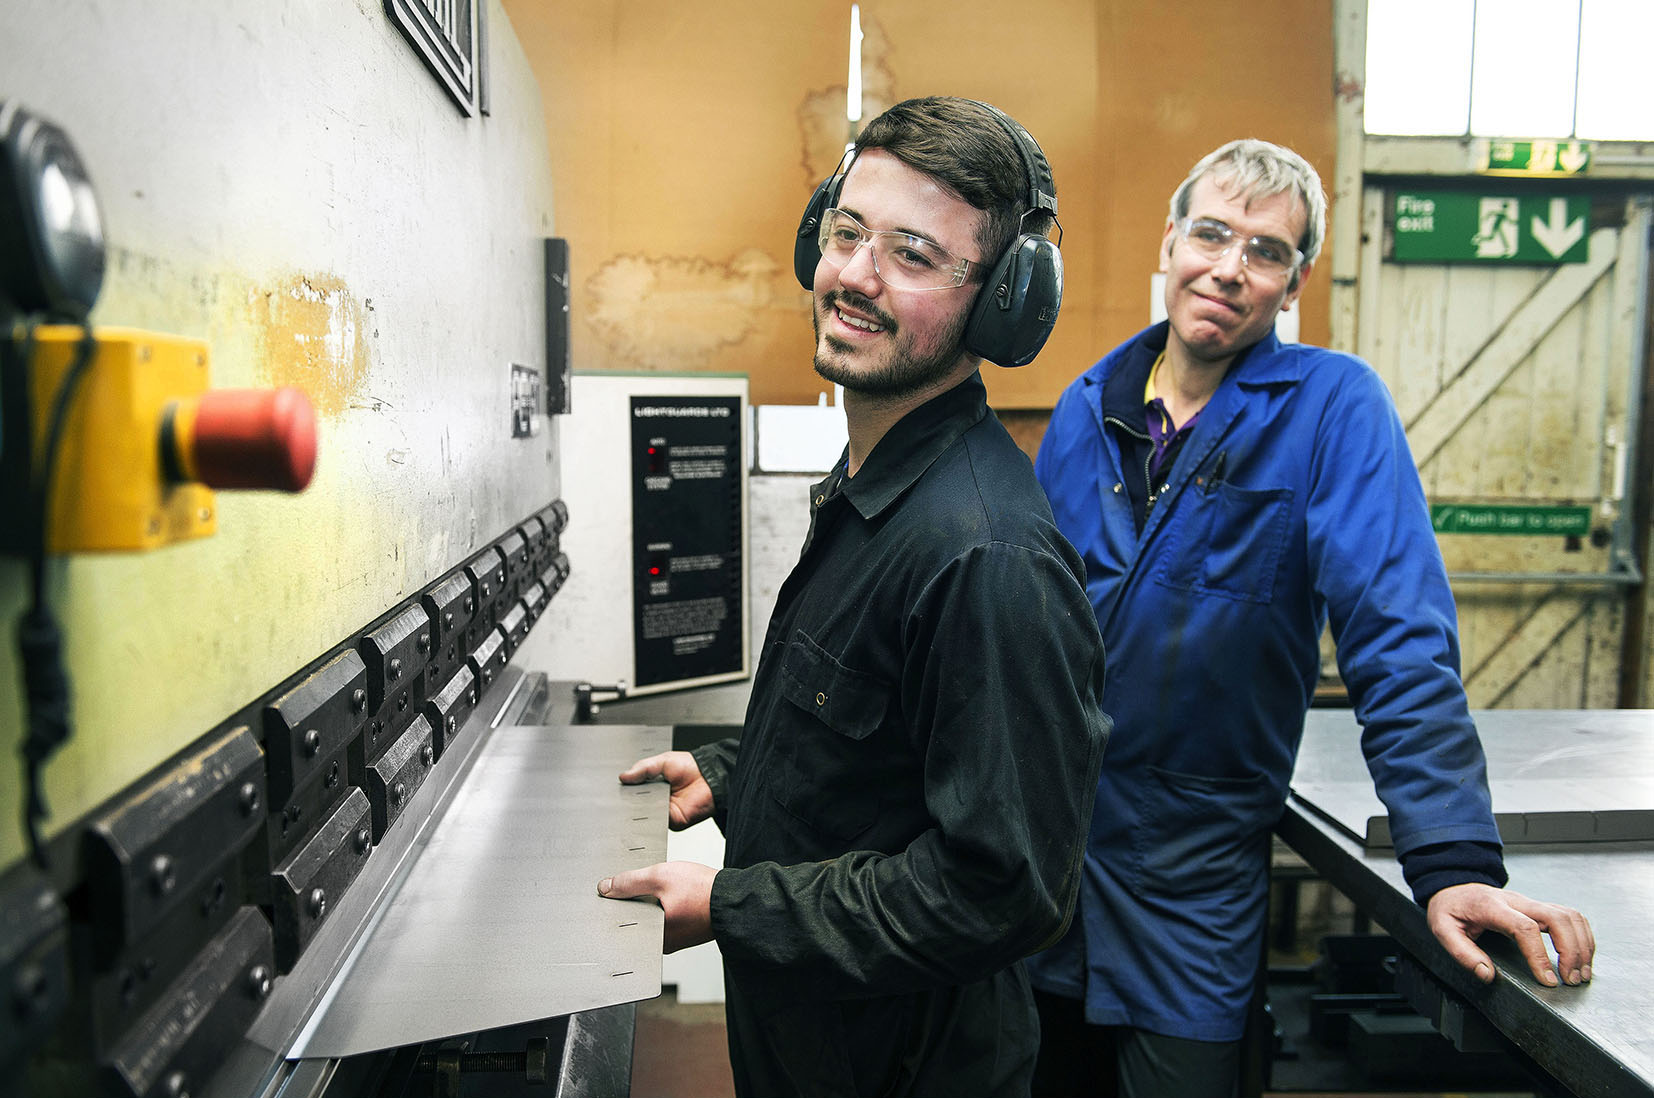 23 February 2015: Engineering firm J & C R Wood, Clough Road, Hull. Apprentice Engineer Jordan Hart with Works Manager Nick Anderson.